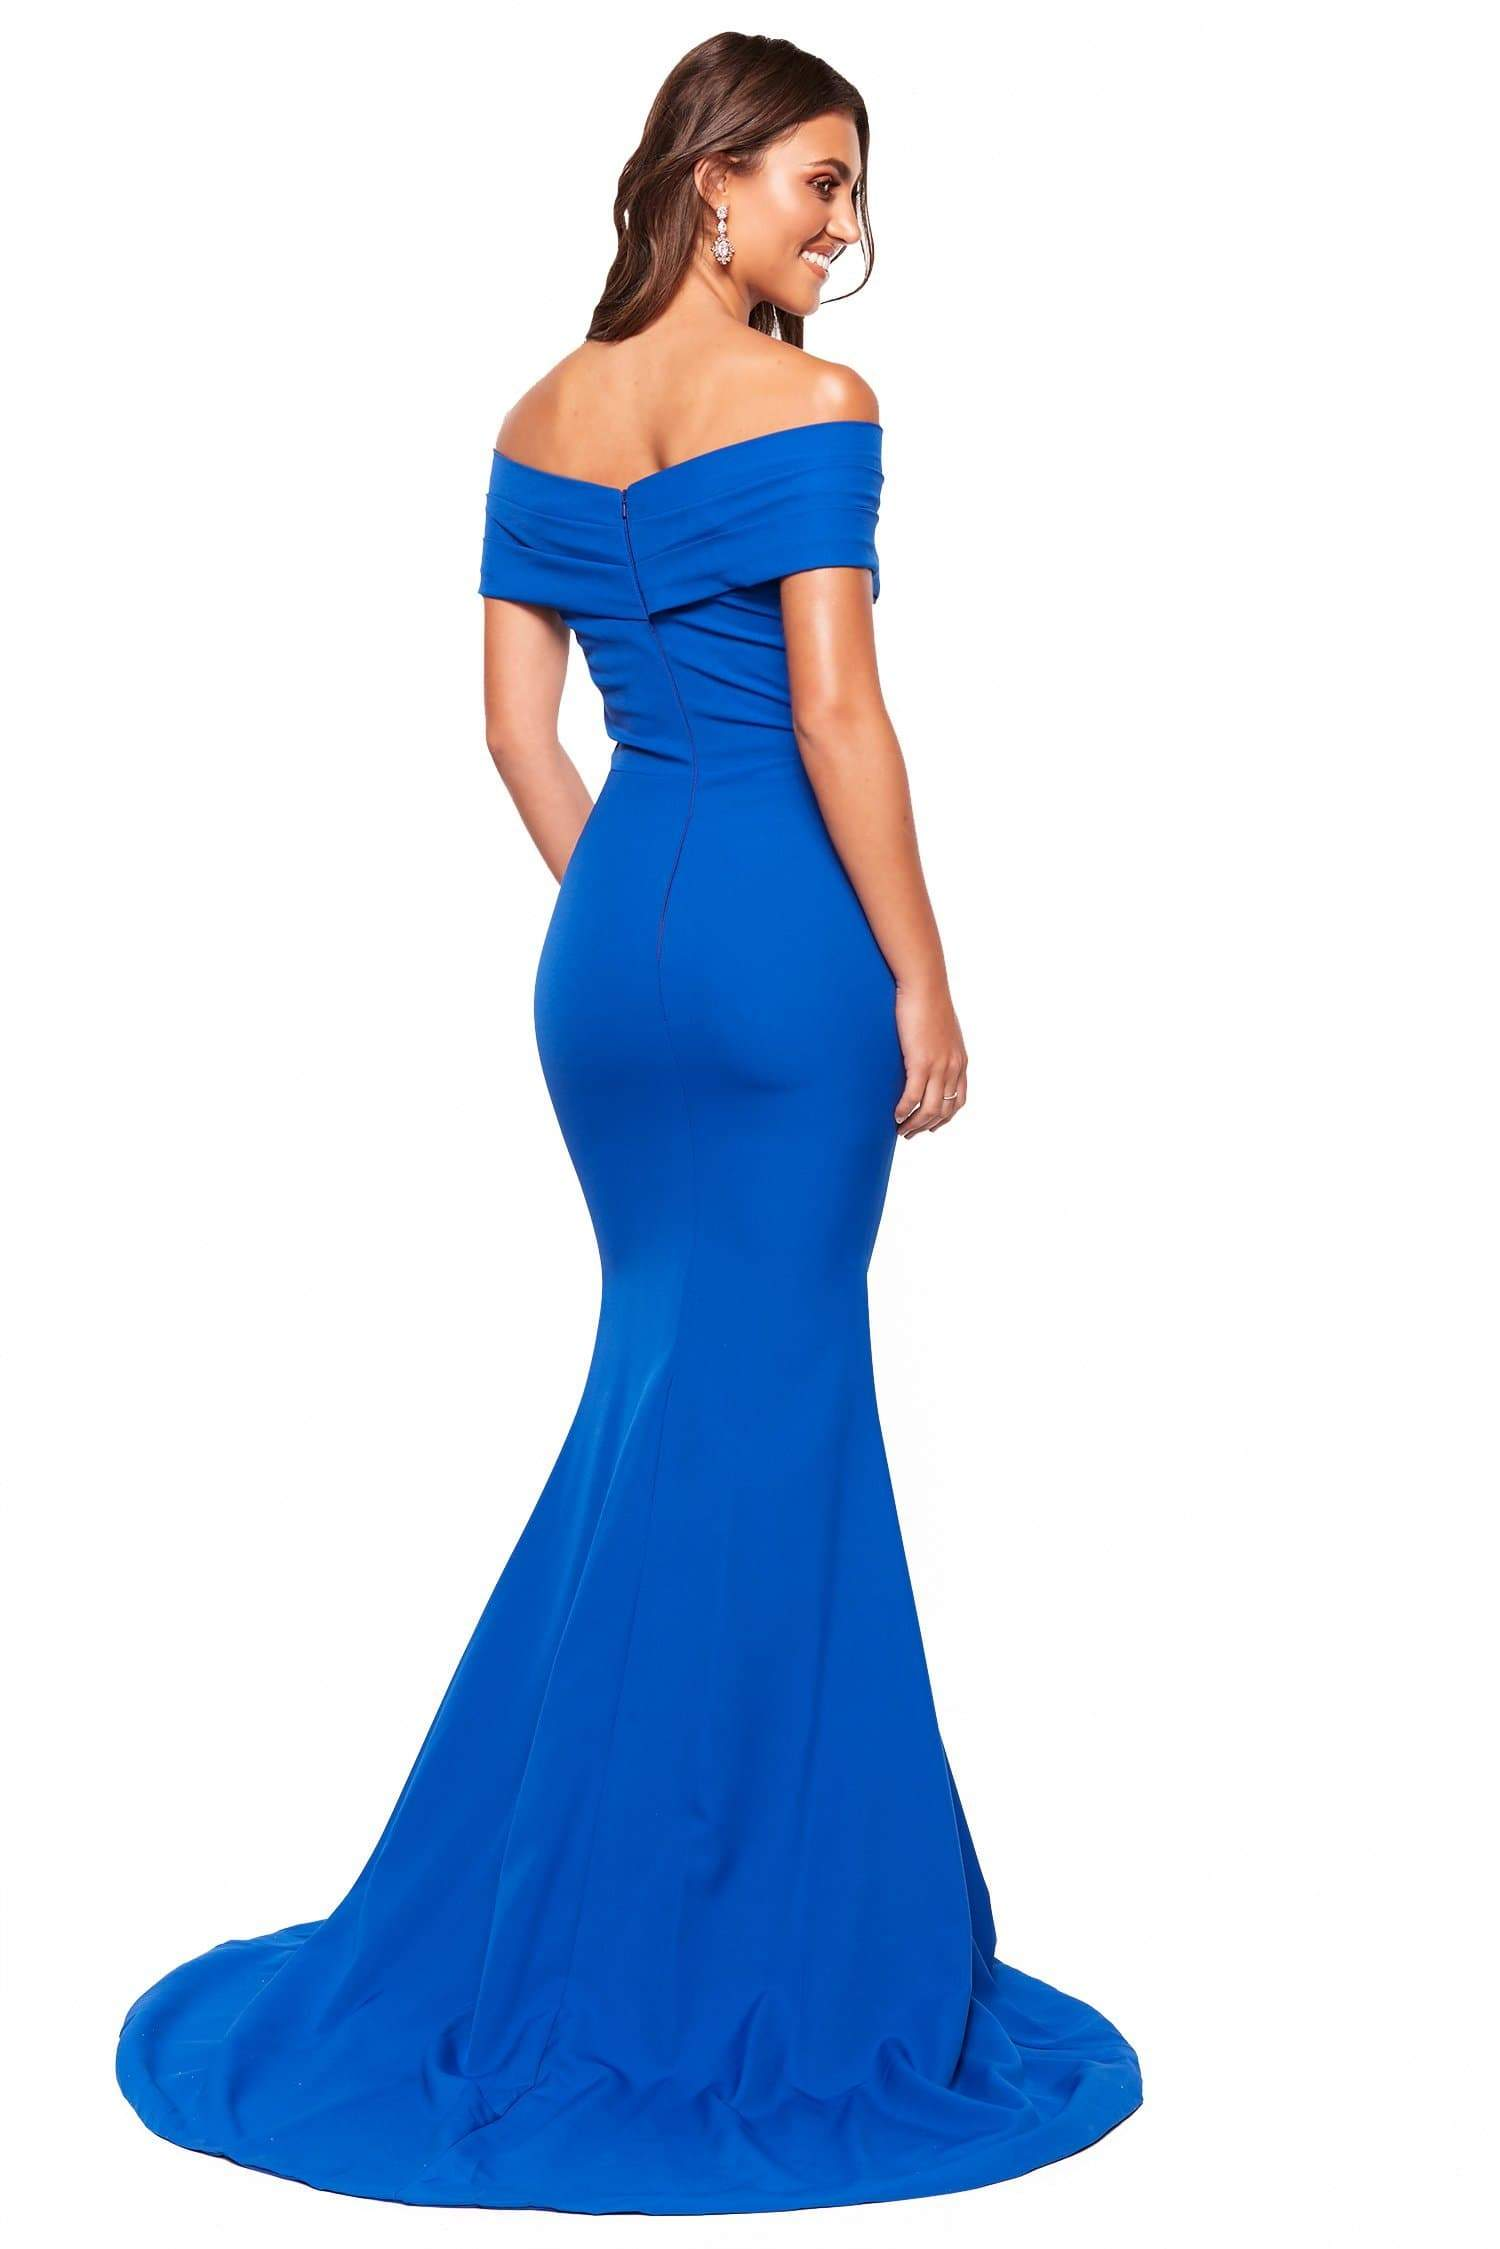 897fa636ad6 A N Luxe Jocelyn - Royal Blue Off-Shoulder Mermaid Gown – A N Luxe Label